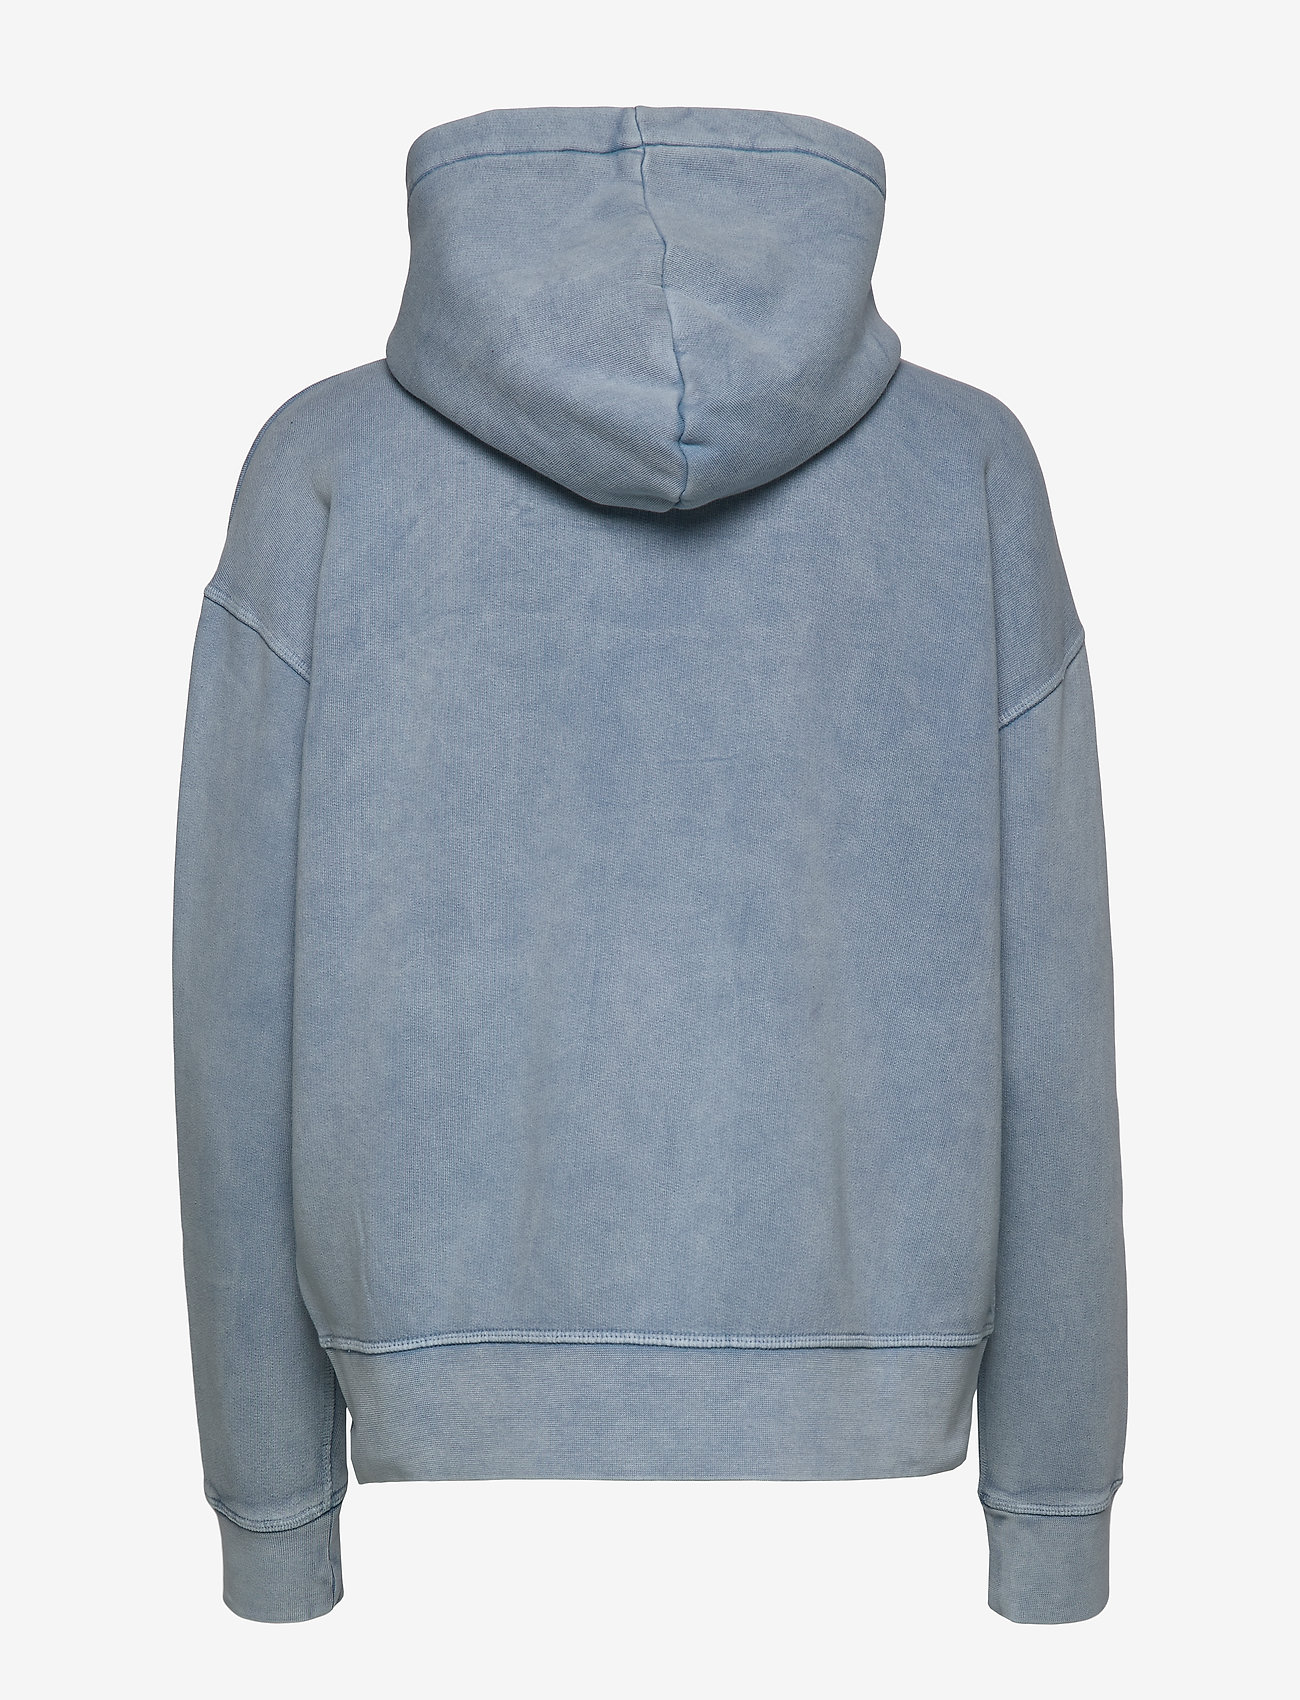 Levi's Made & Crafted LMC THE HOODIE LMC COPEN BLUE- Sweats MJB92zfm sajcs wPcSX1CO